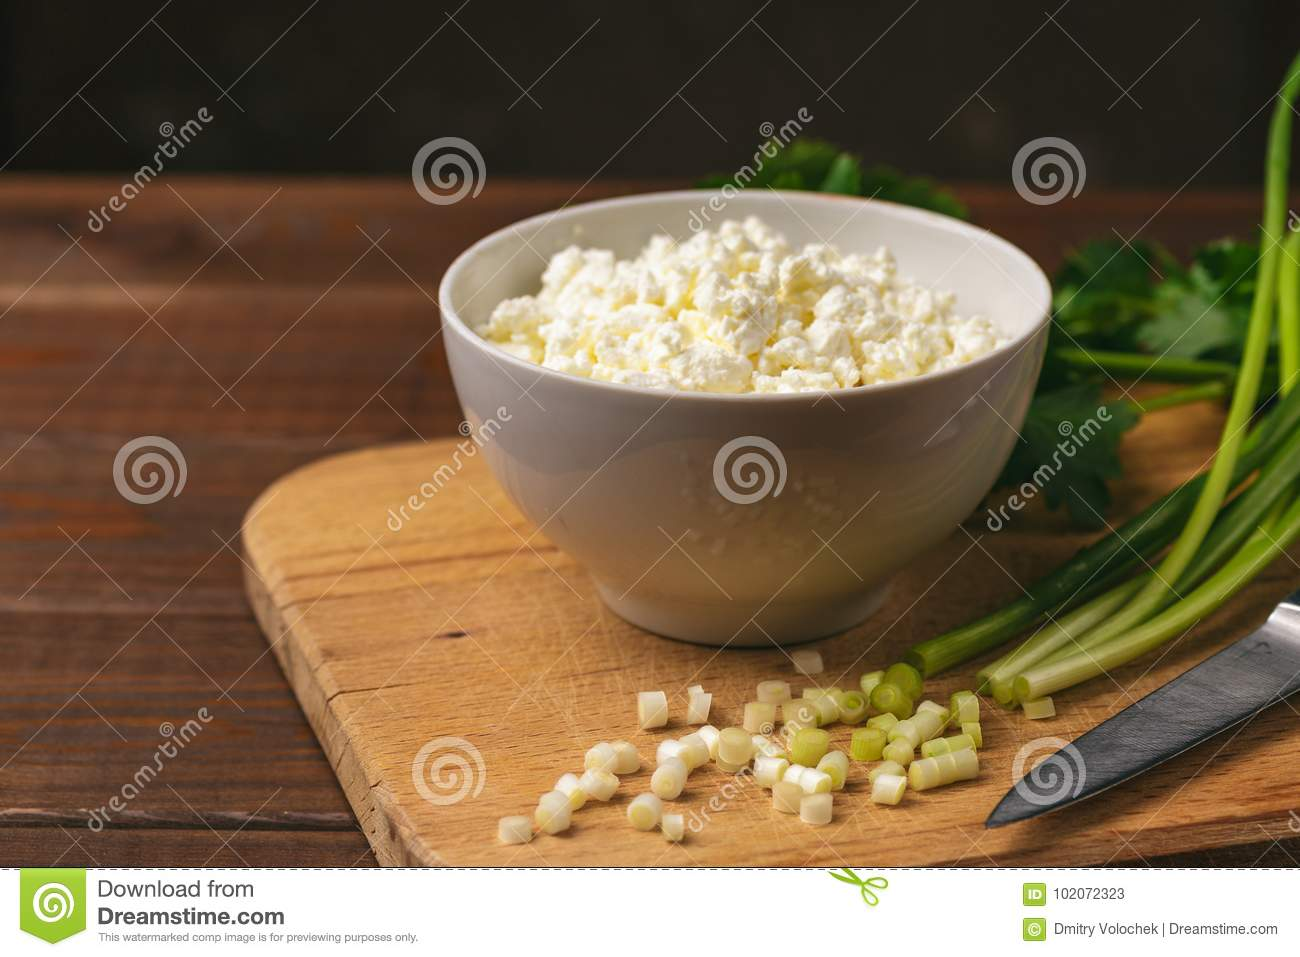 cottage cheese or curd in bowl and fresh green herb as ingredients rh dreamstime com Cottage Cheese Diet Before and After Cottage Cheese and Weight Loss